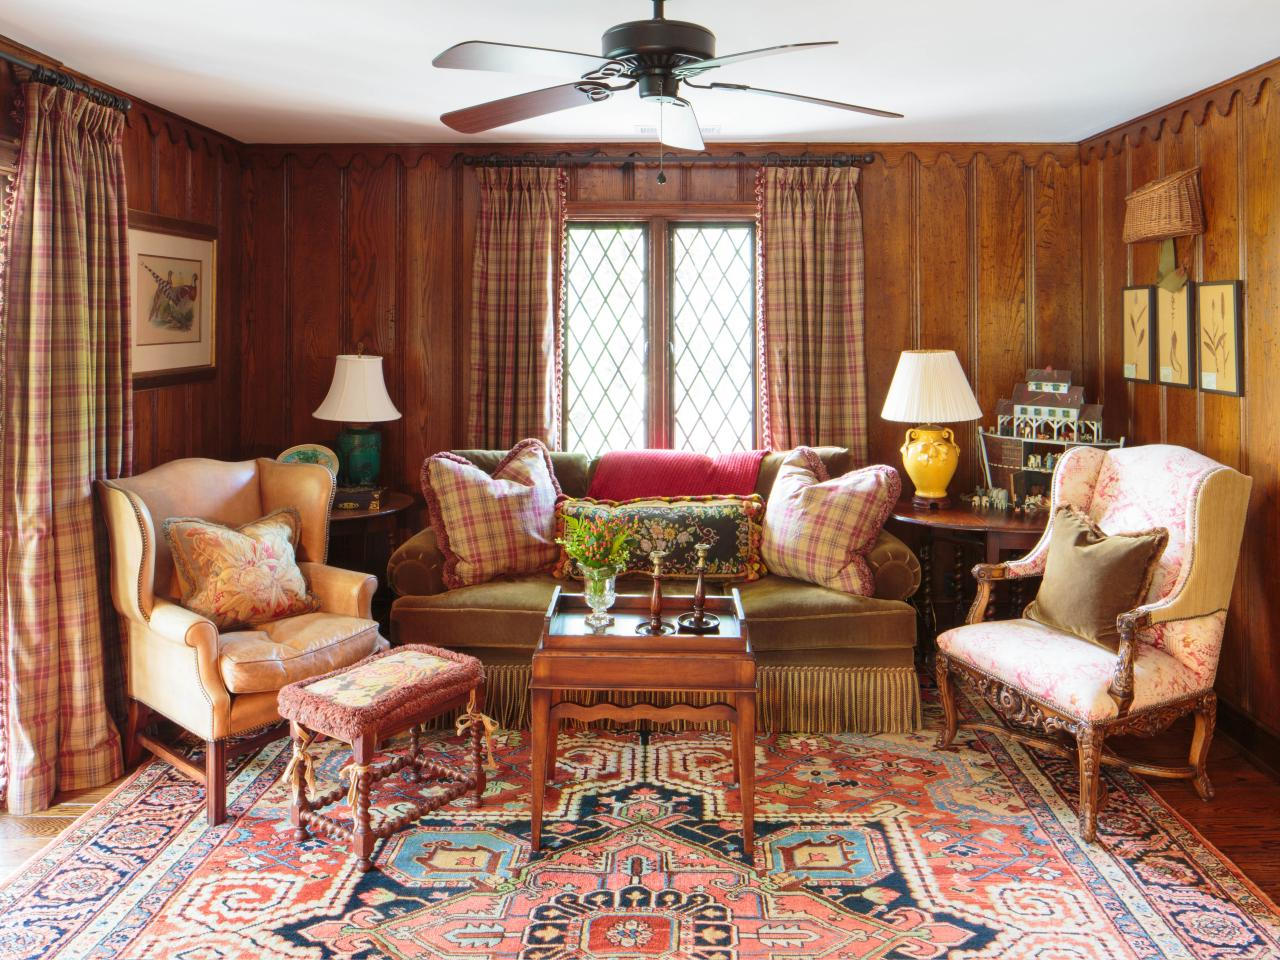 small traditional interior design for living rooms with luxury carpet decor ideas